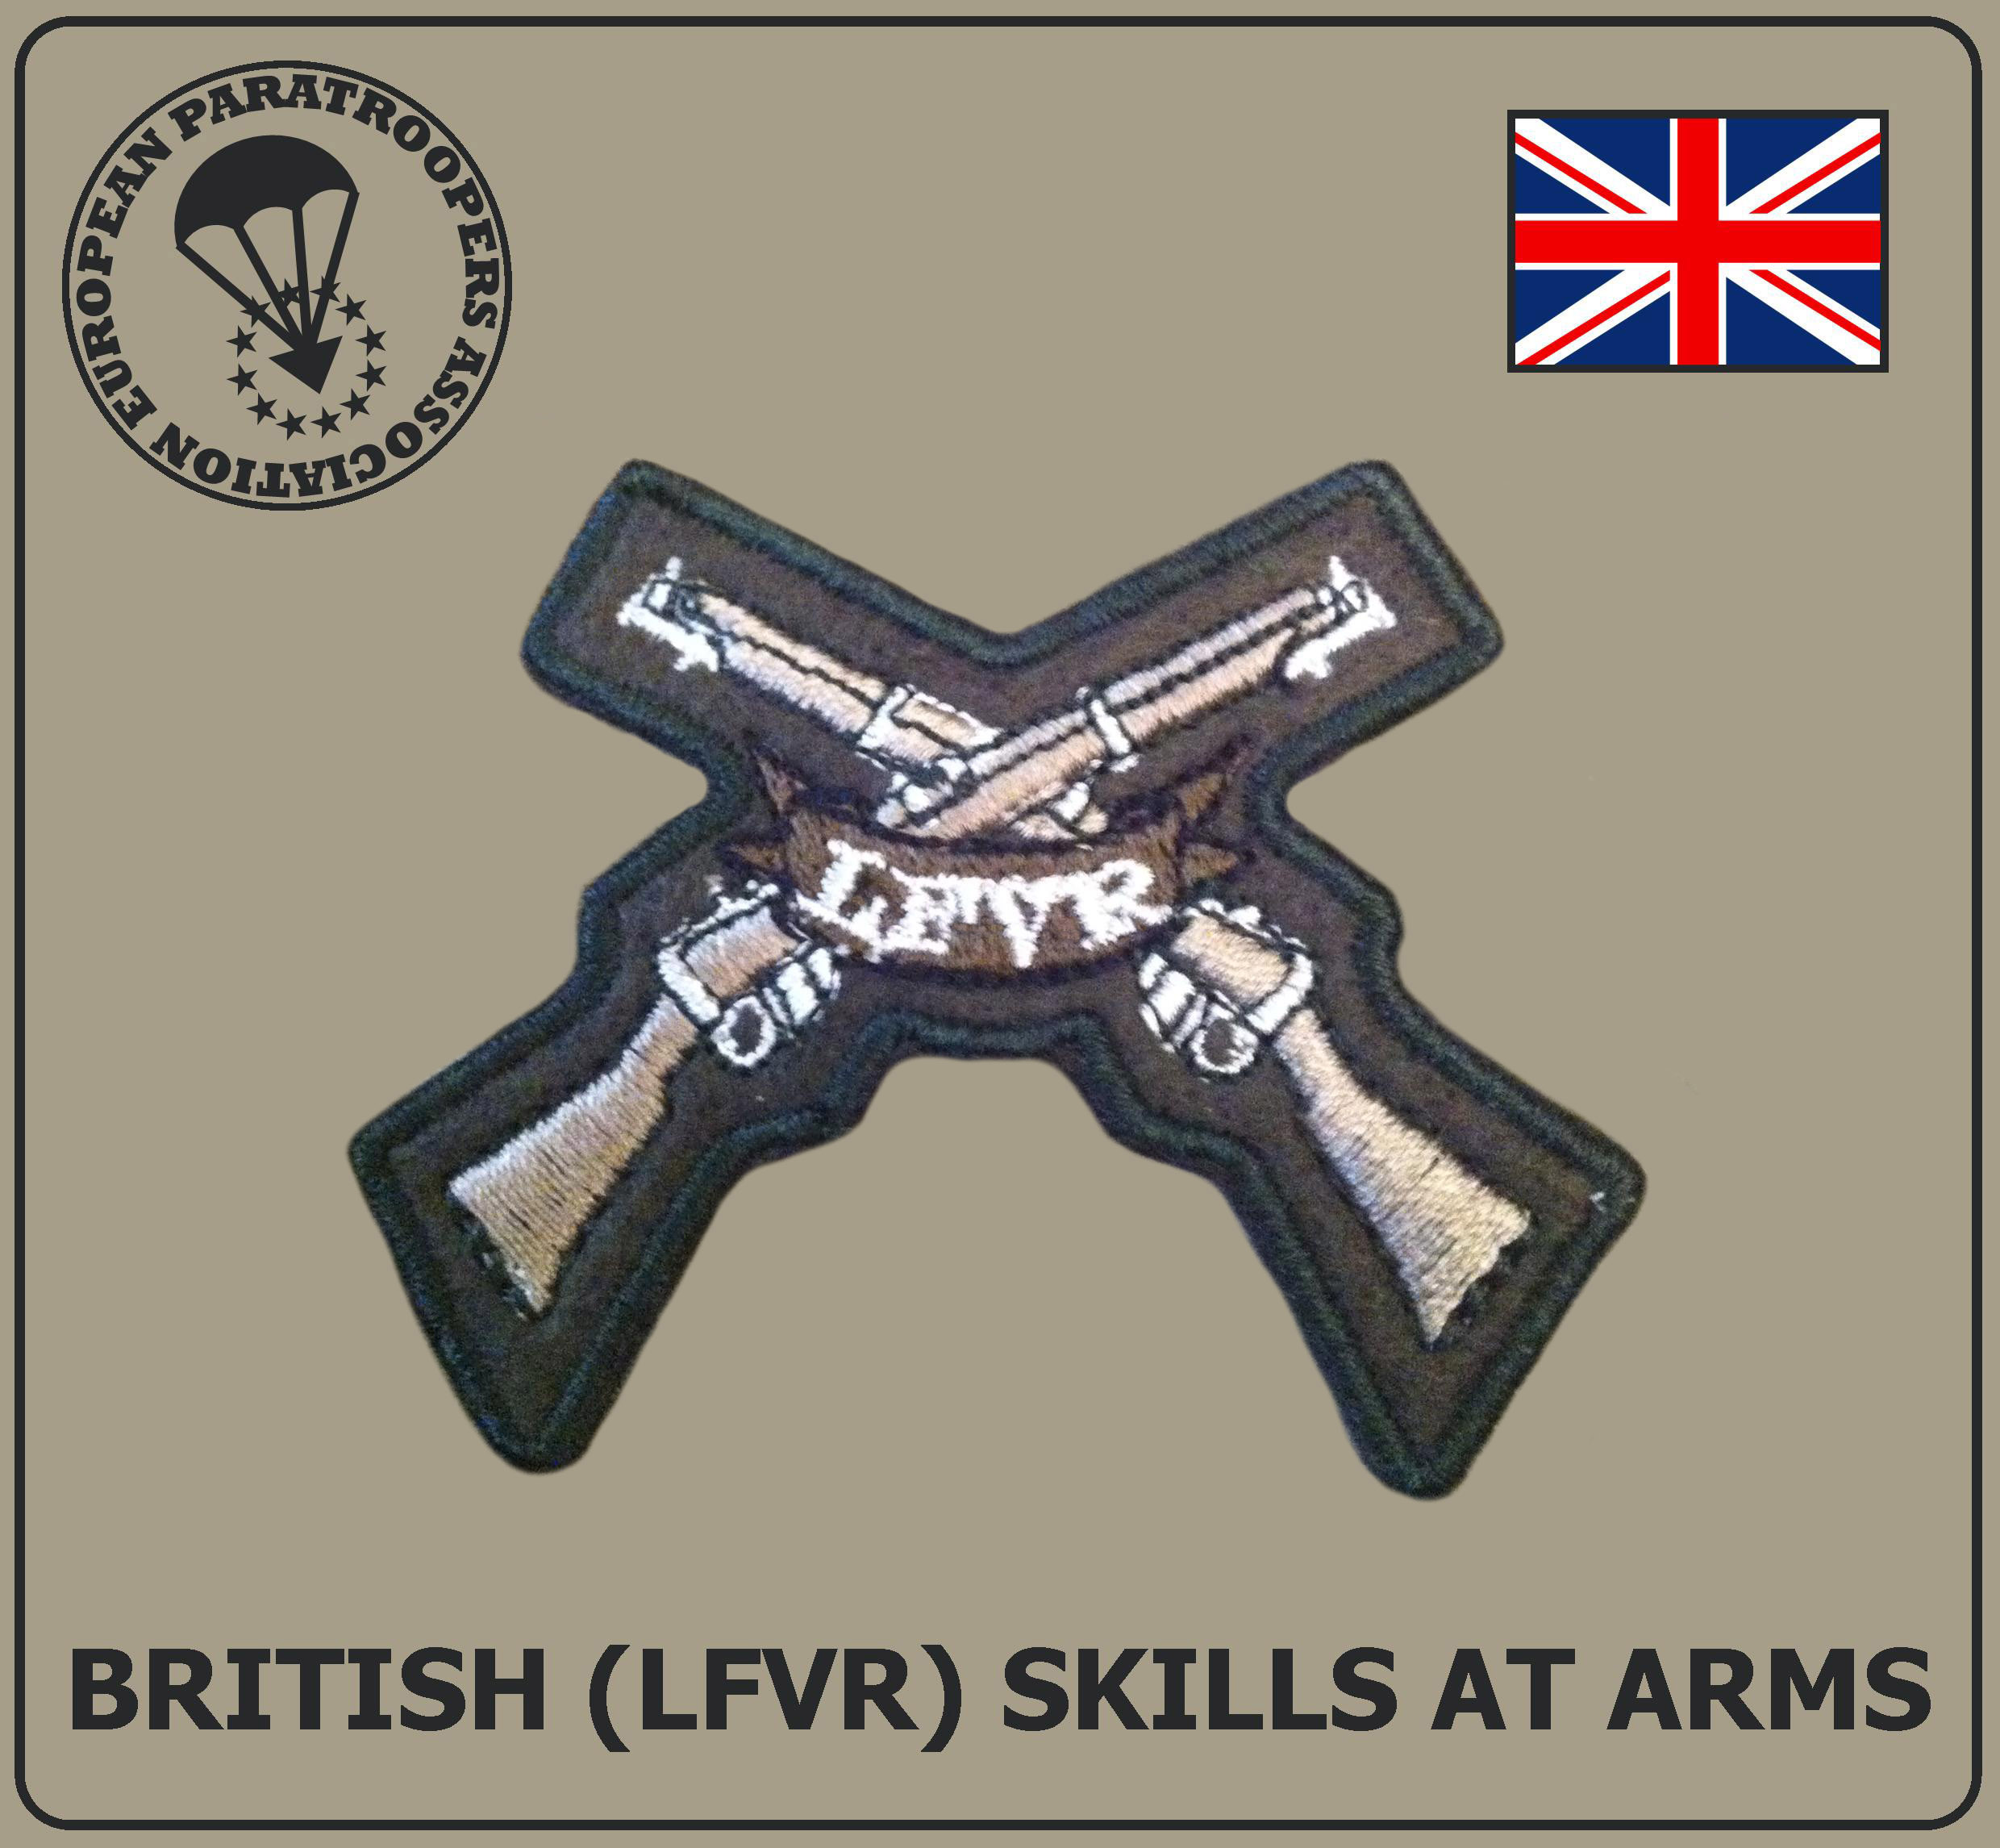 BRITISH LFVR SKILLS AT ARMS